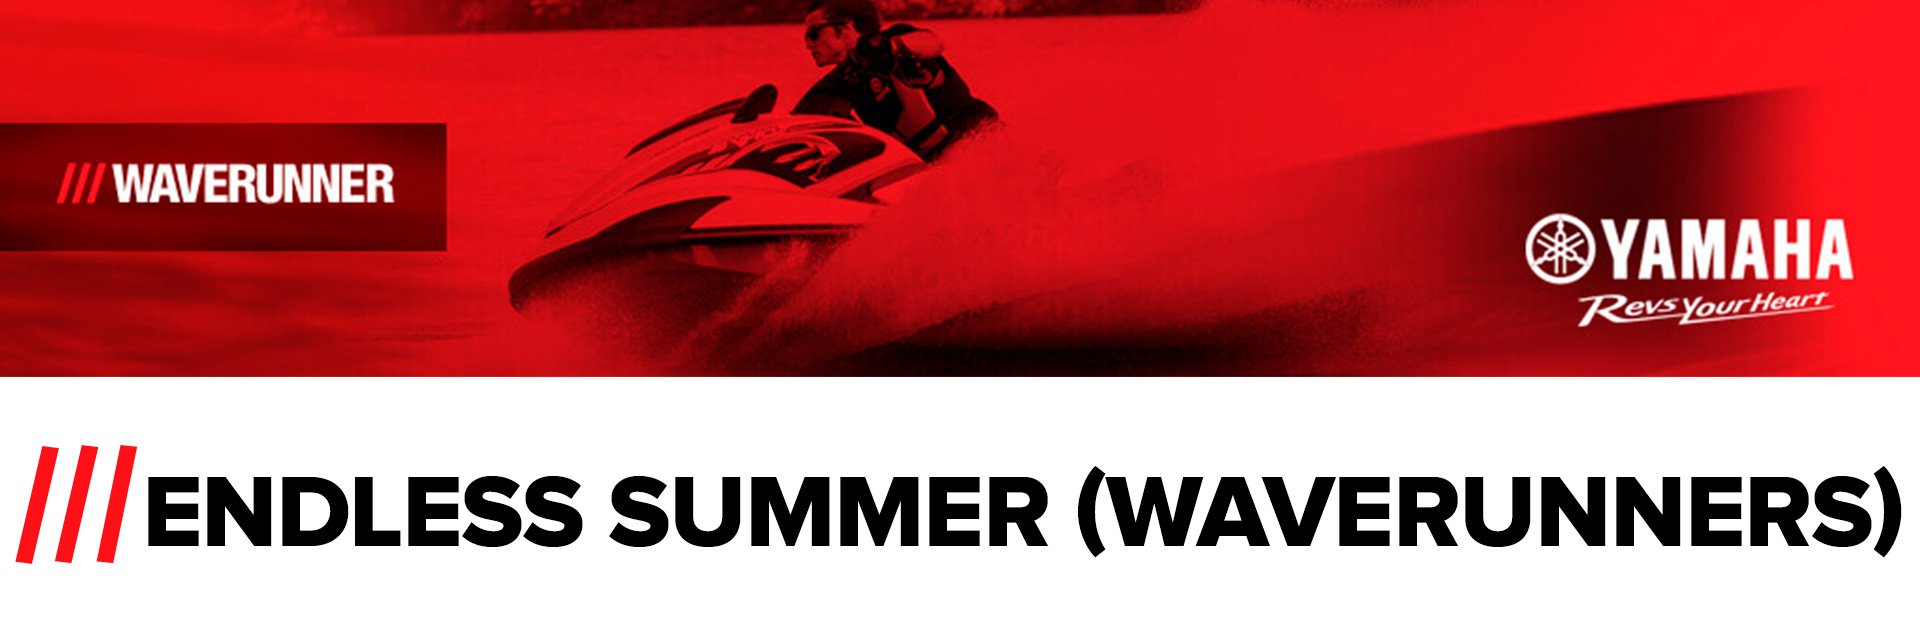 Yamaha: ENDLESS SUMMER (WAVERUNNER)